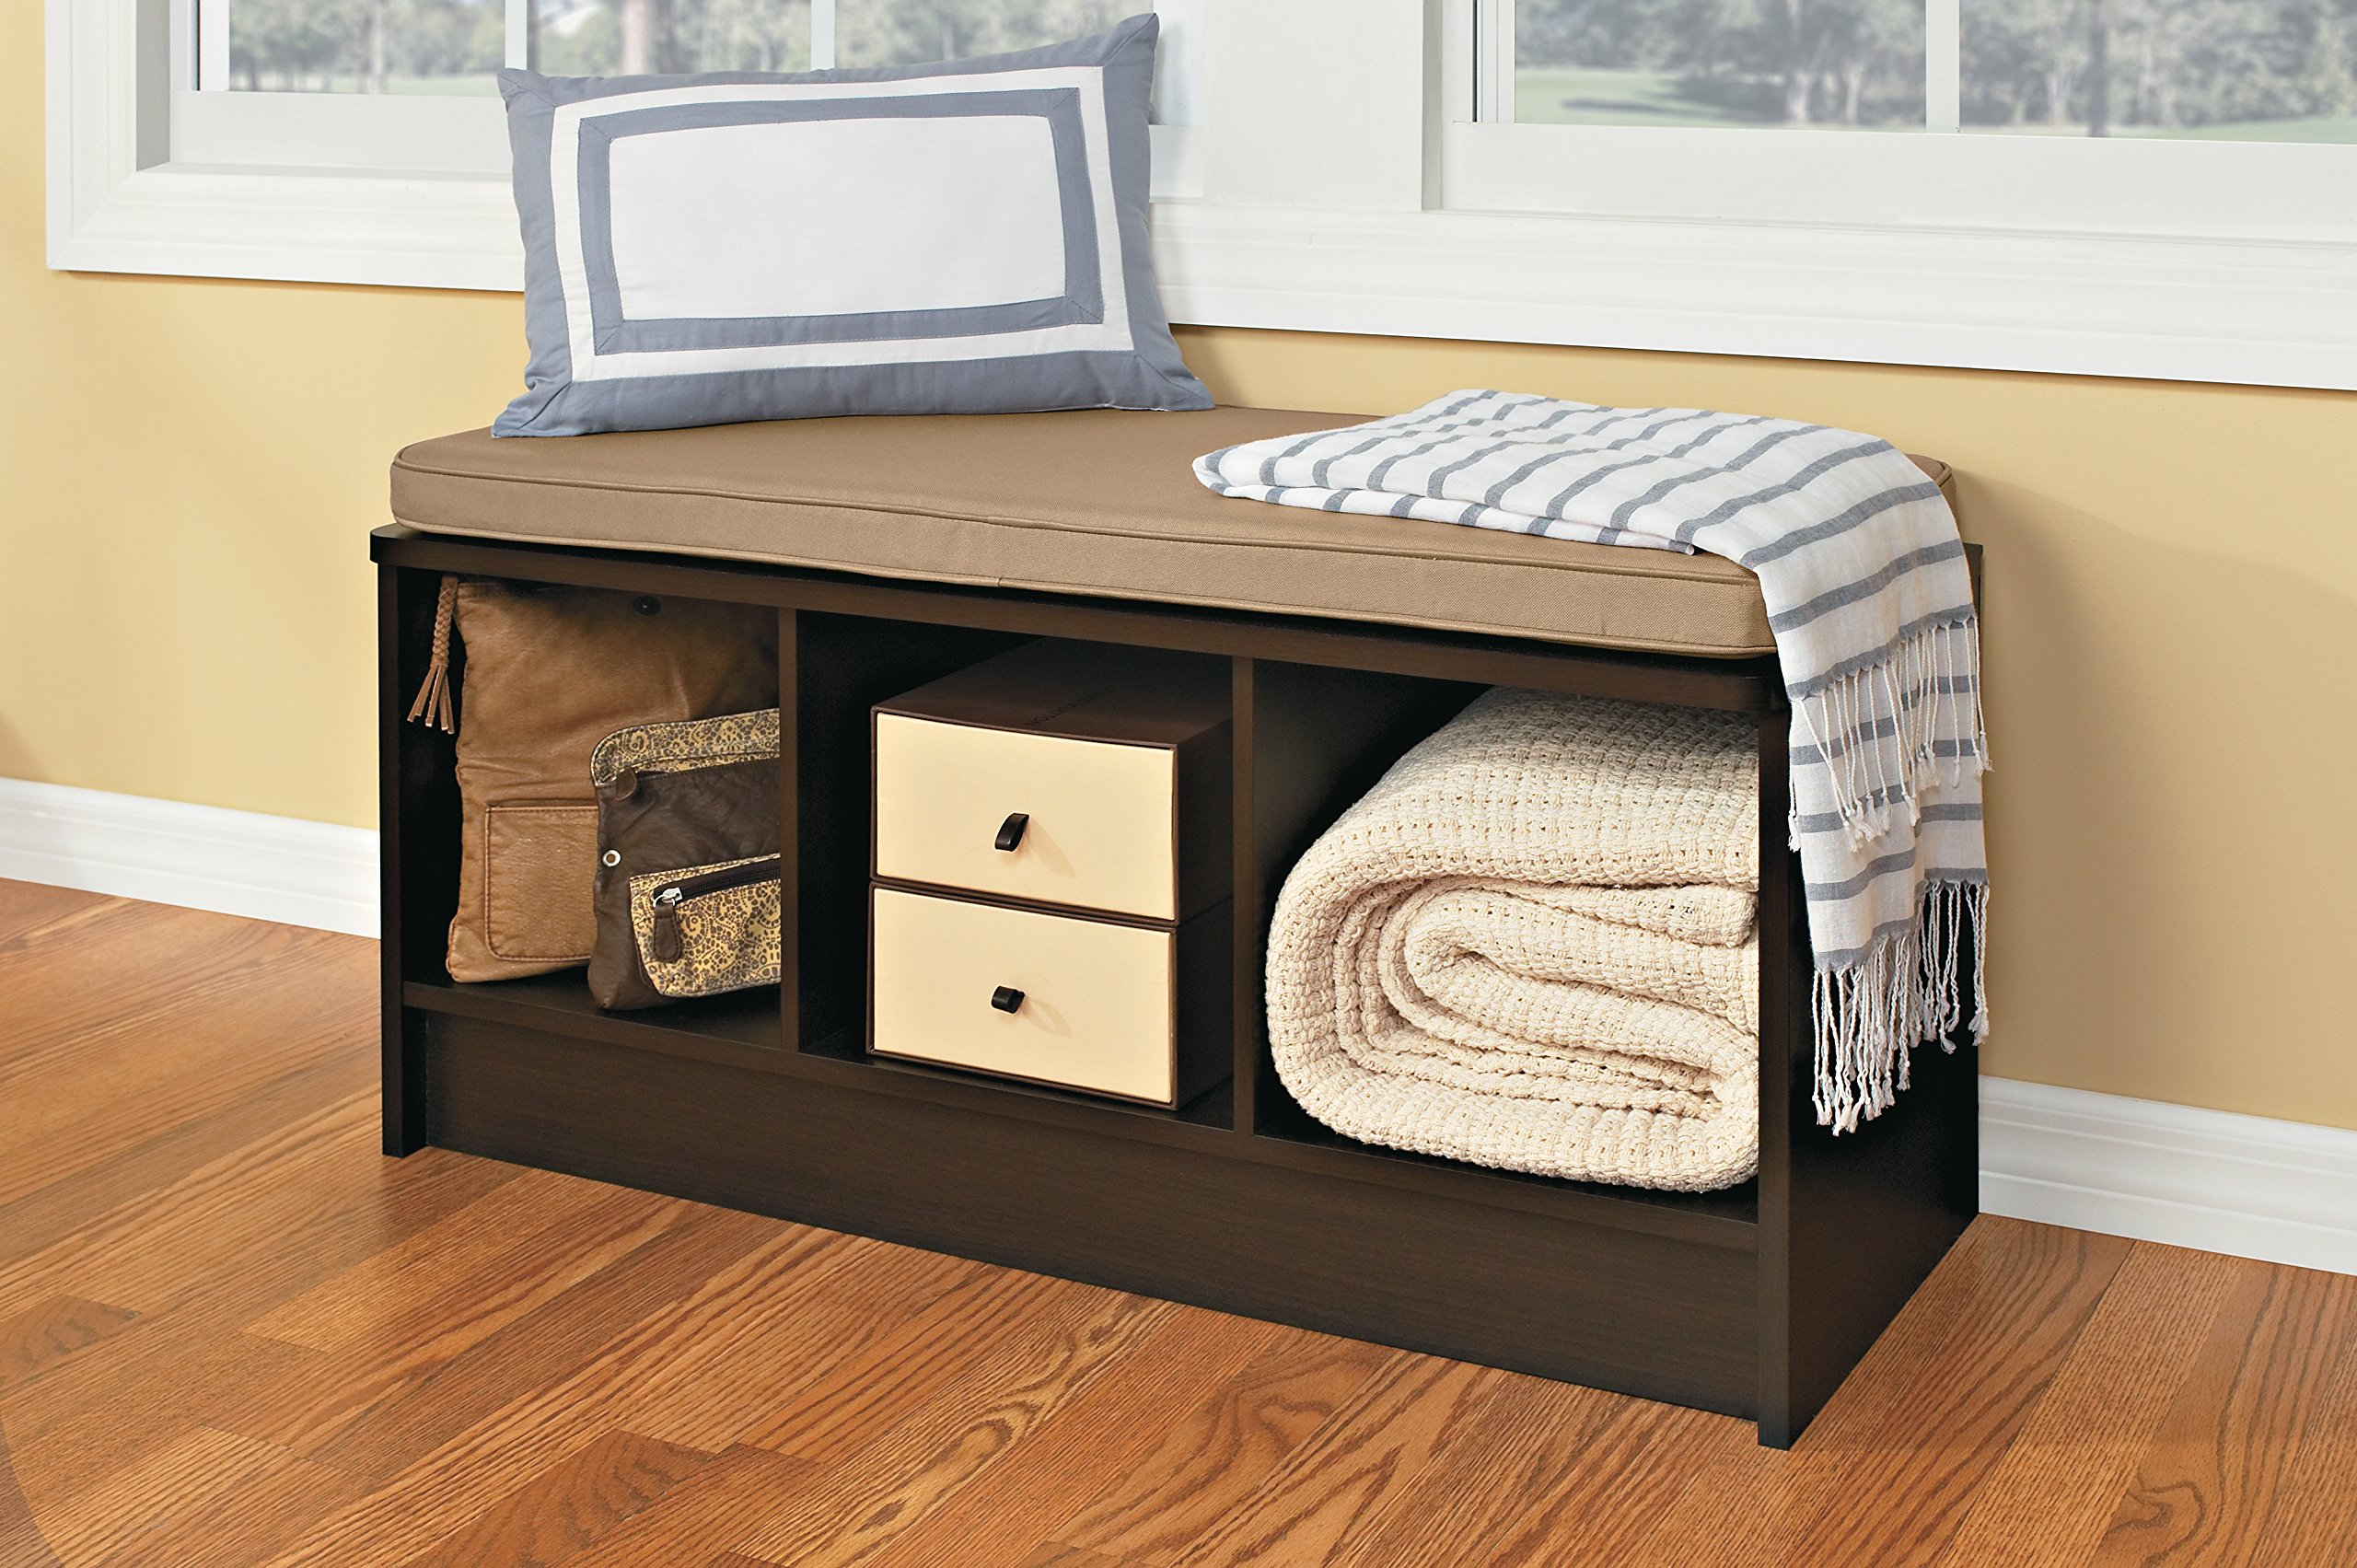 ClosetMaid 1570 Cubeicals 3 Cube Storage Bench, Espresso   1570 U003c Storage  Benches U003c Home U0026 Kitchen   TIBS